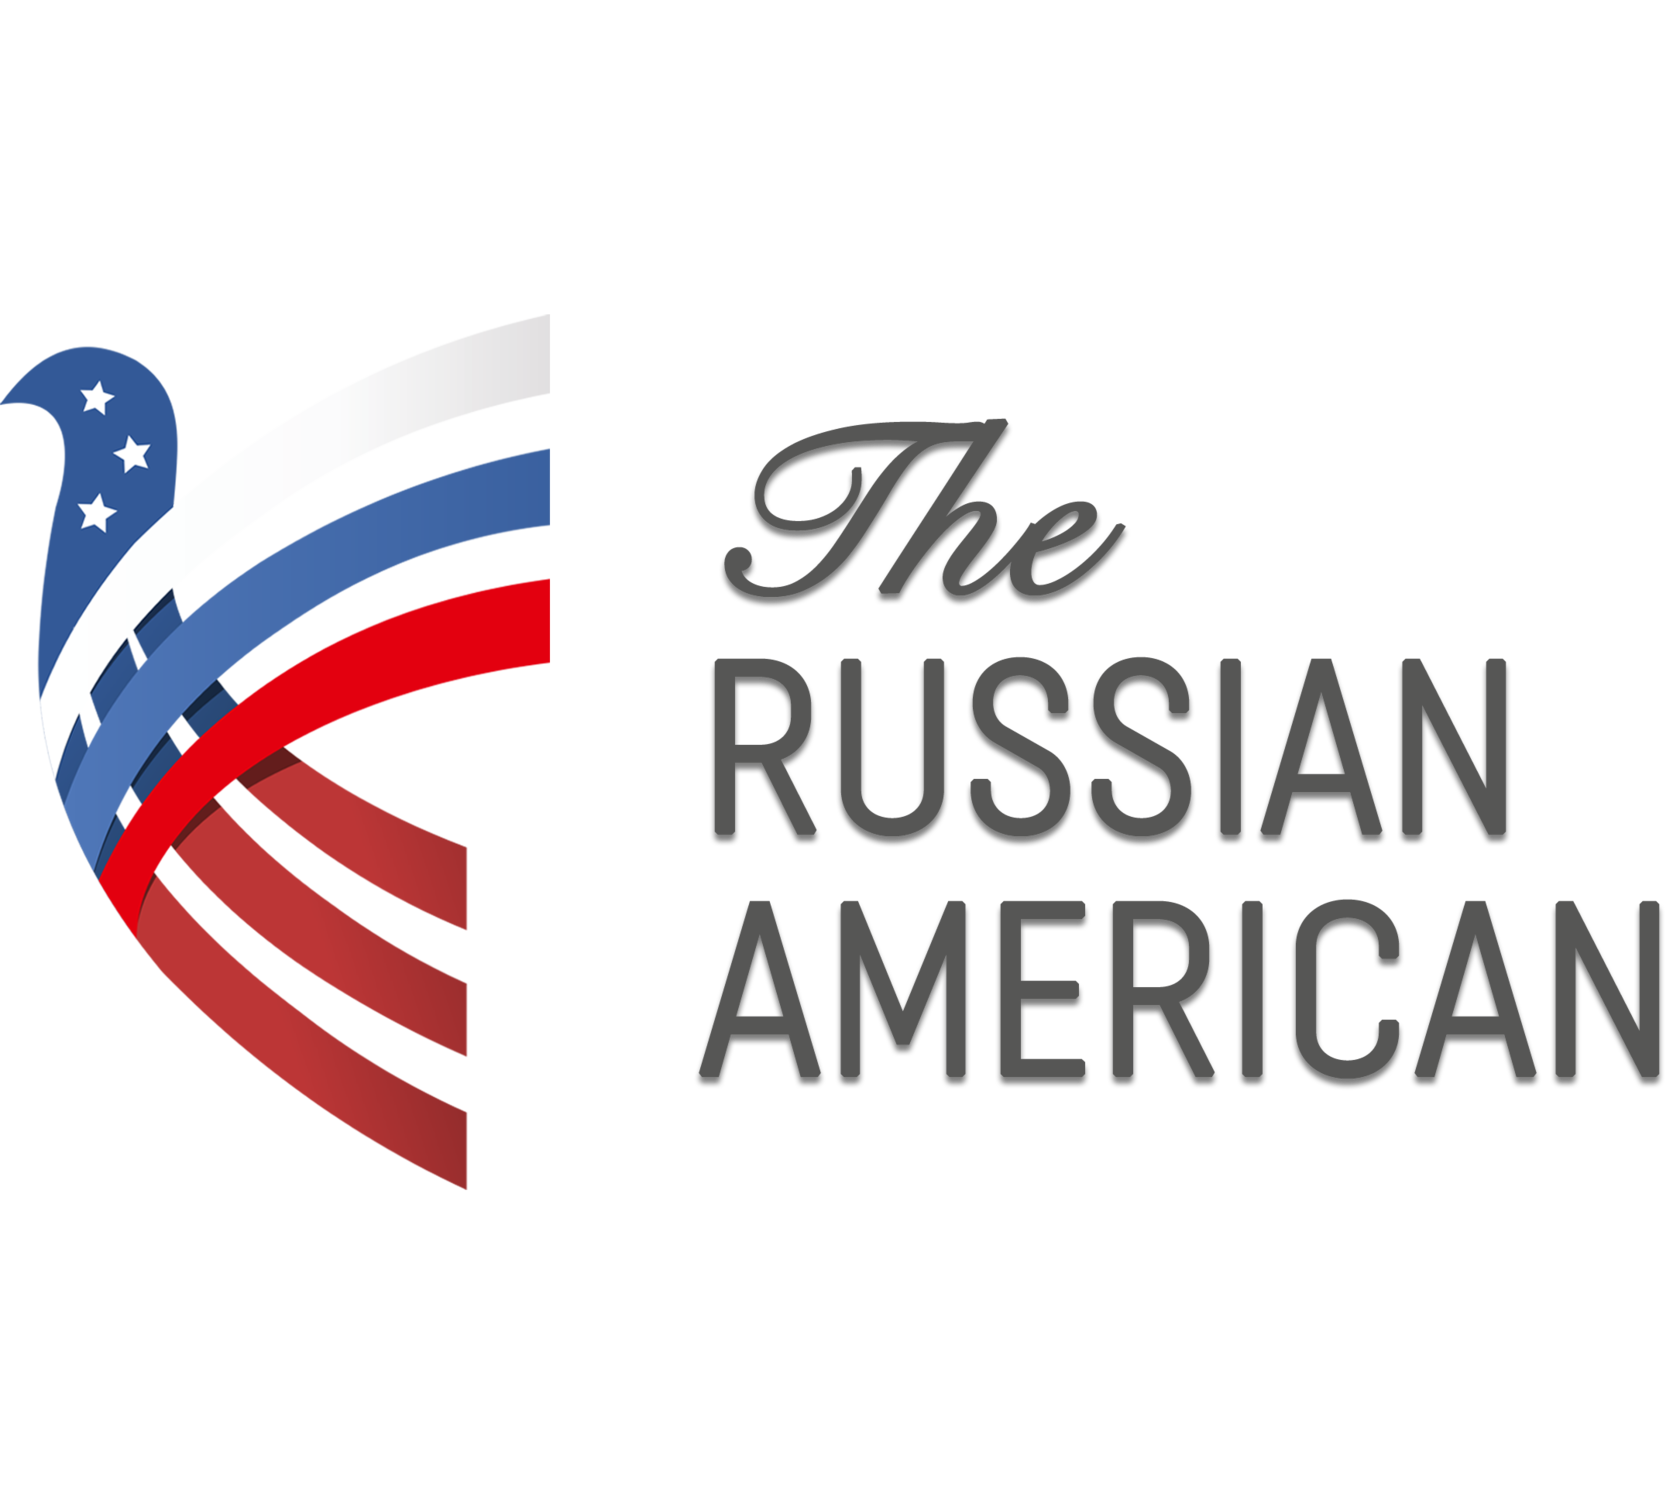 THE RUSSIAN AMERICAN